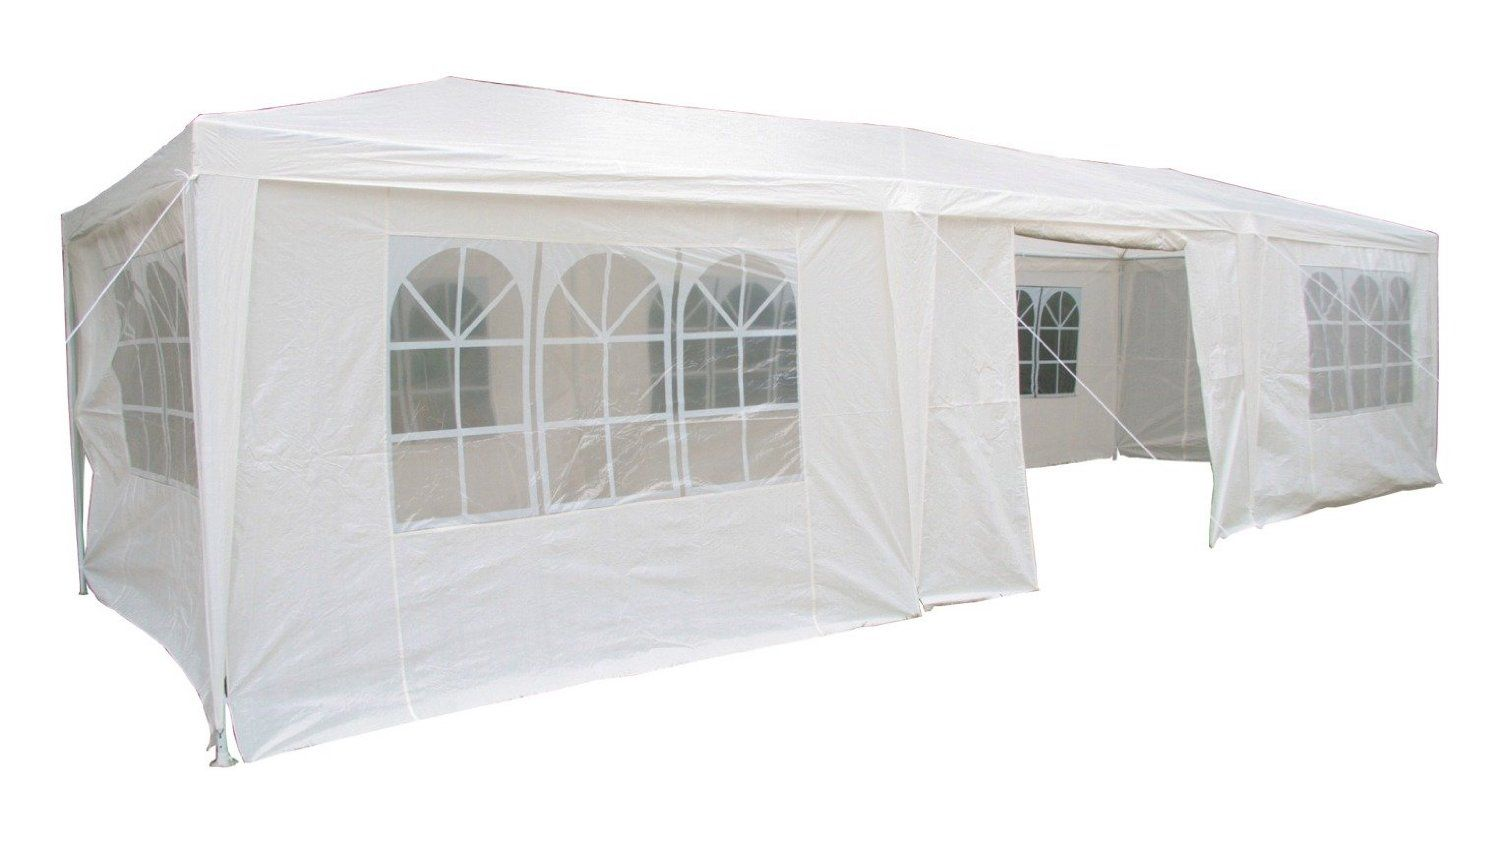 Airwave 3 x 9m Party Tent Gazebo Marquee with 3 x Unique WindBars and Side Panels  sc 1 st  Pinterest : tent panels - memphite.com